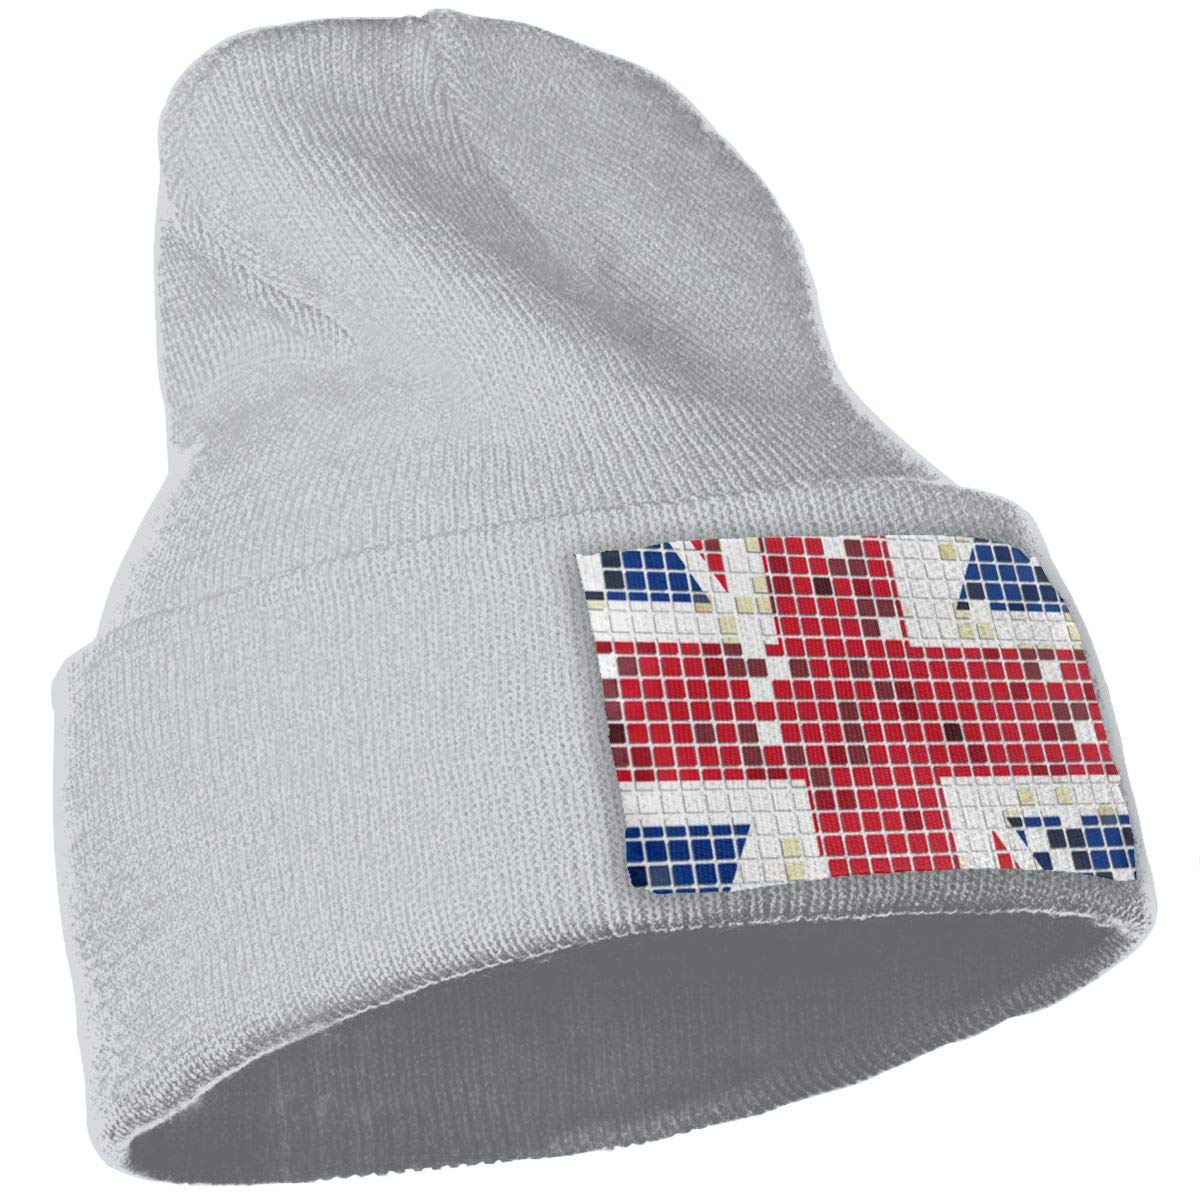 Vintage England Flag Hat for Men and Women Winter Warm Hats Knit Slouchy Thick Skull Cap Black